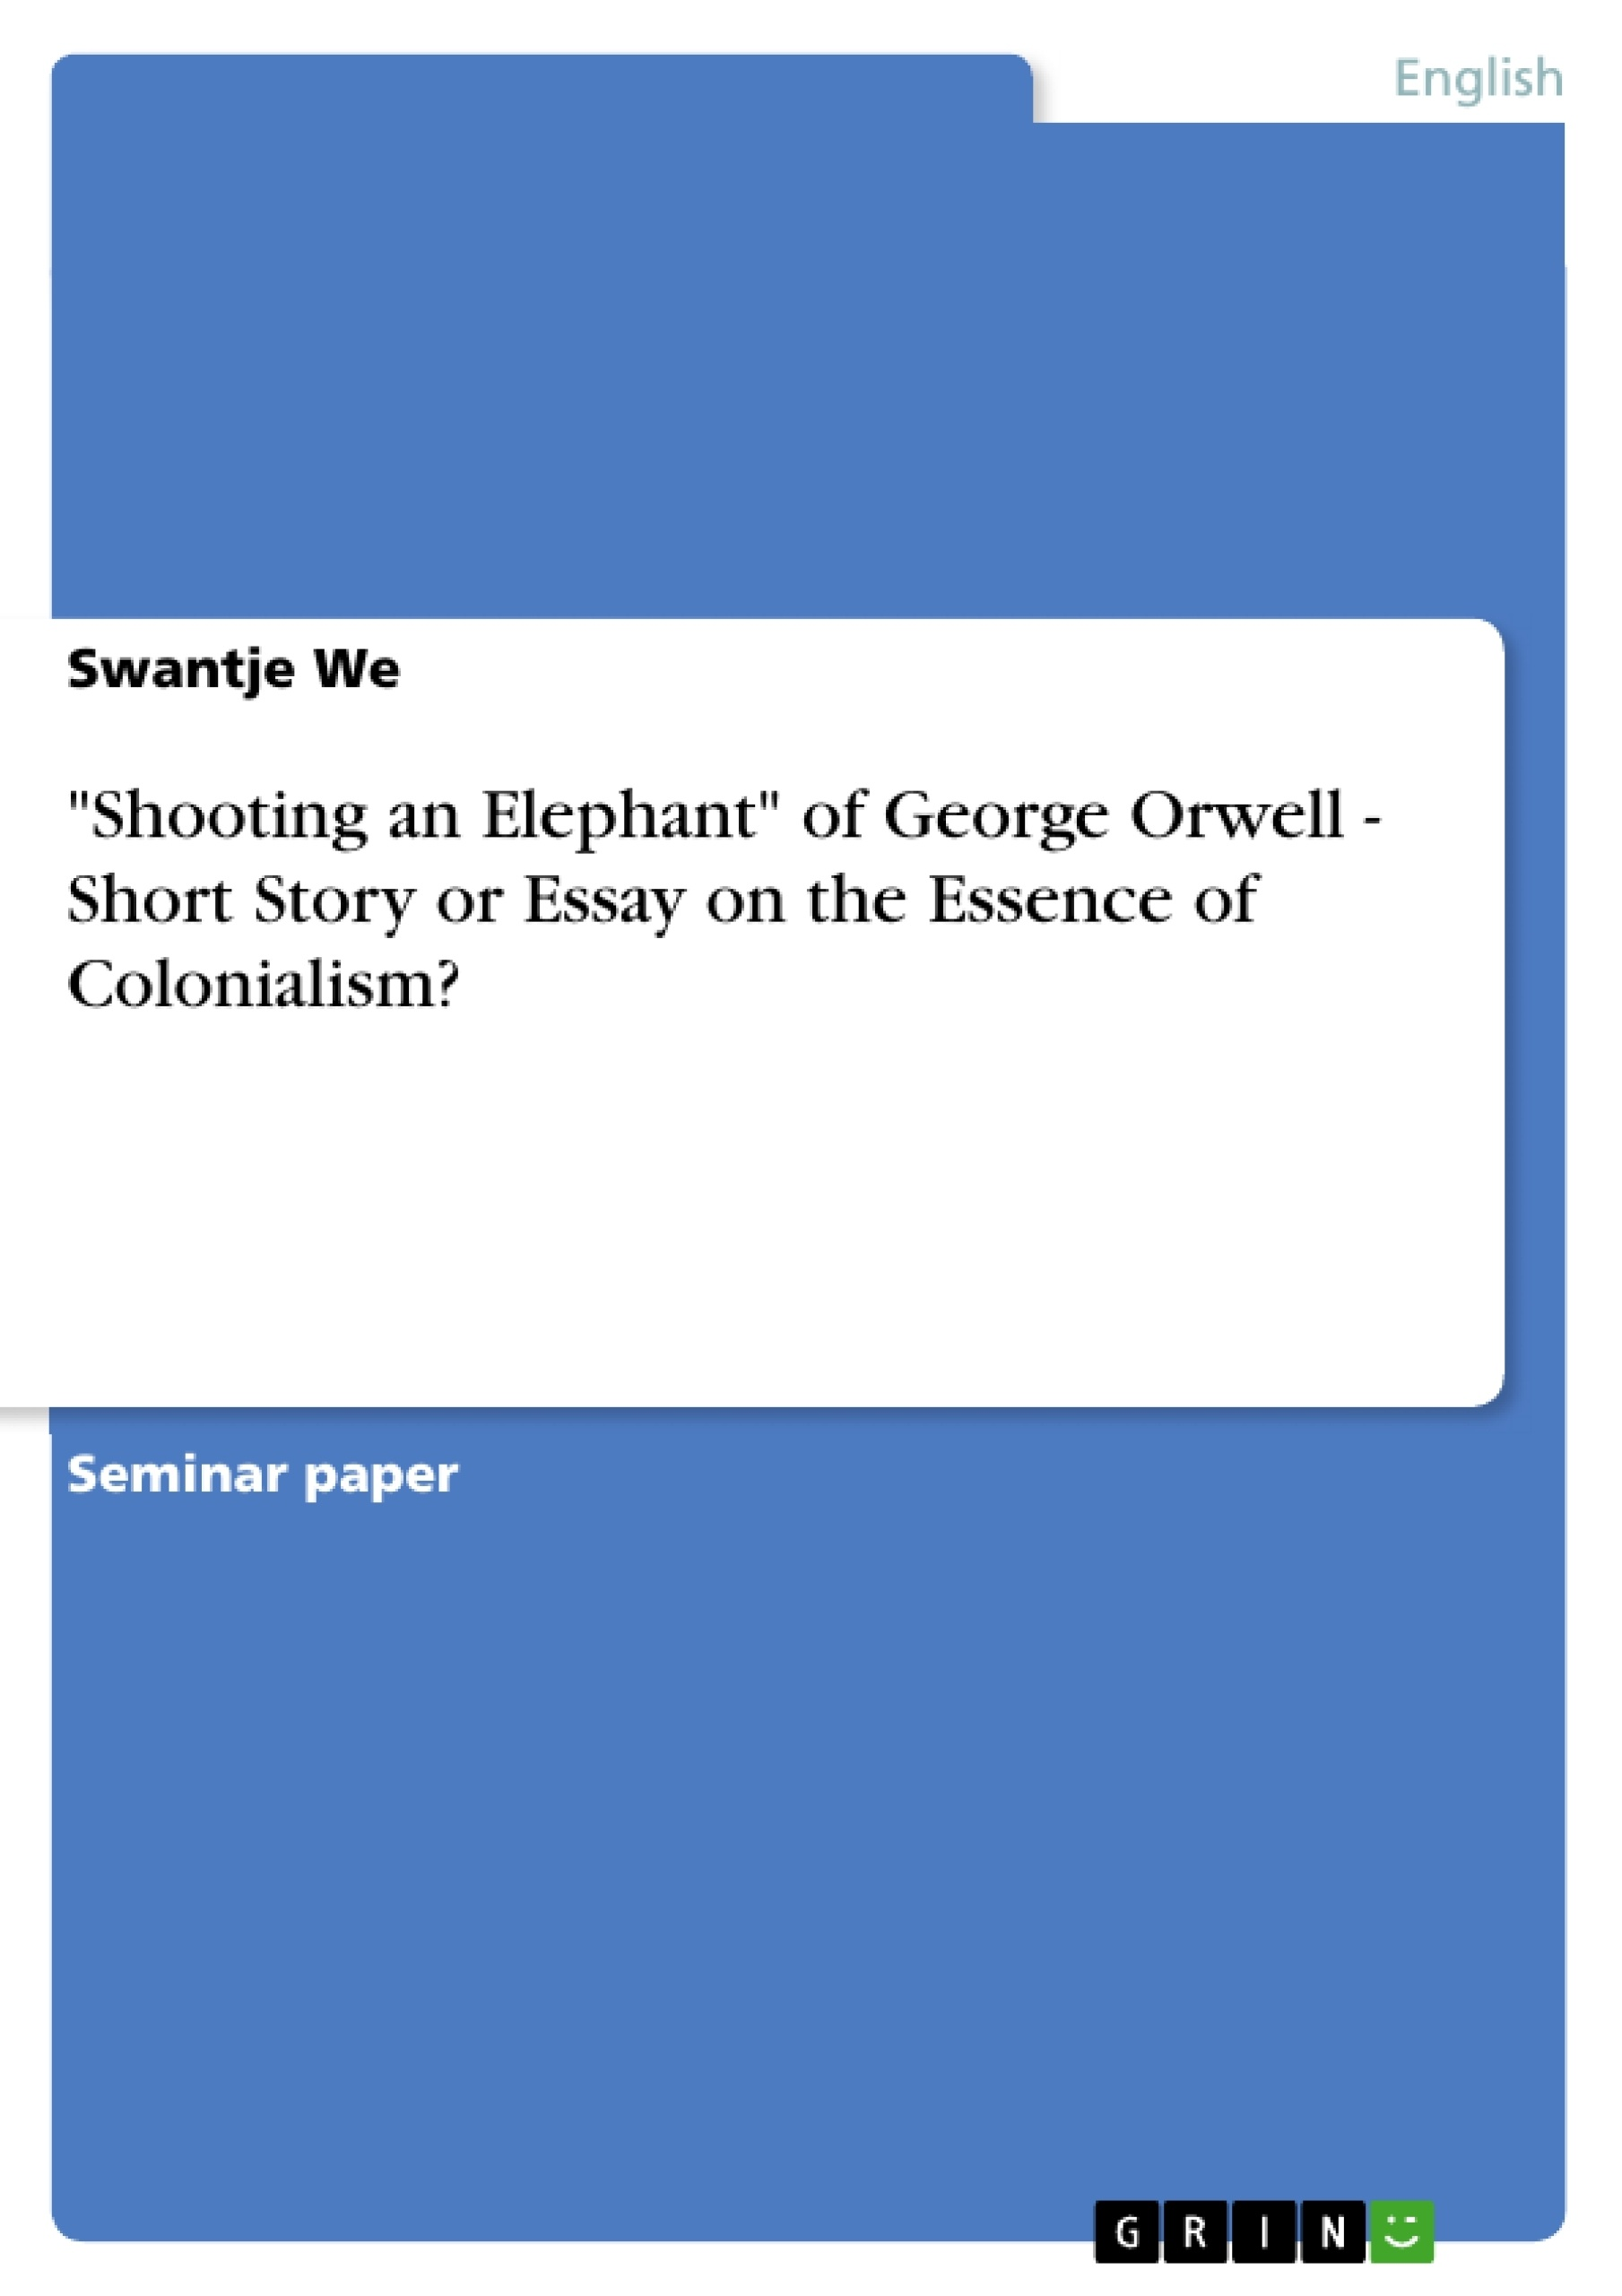 Science Essay Examples Shooting An Elephant Of George Orwell Short Story Or Essay On Shooting An  Elephant Of George Essay Writing Topics For High School Students also Proposal Essay Examples Essays On Short Stories Shooting An Elephant Of George Orwell  Essay On English Language